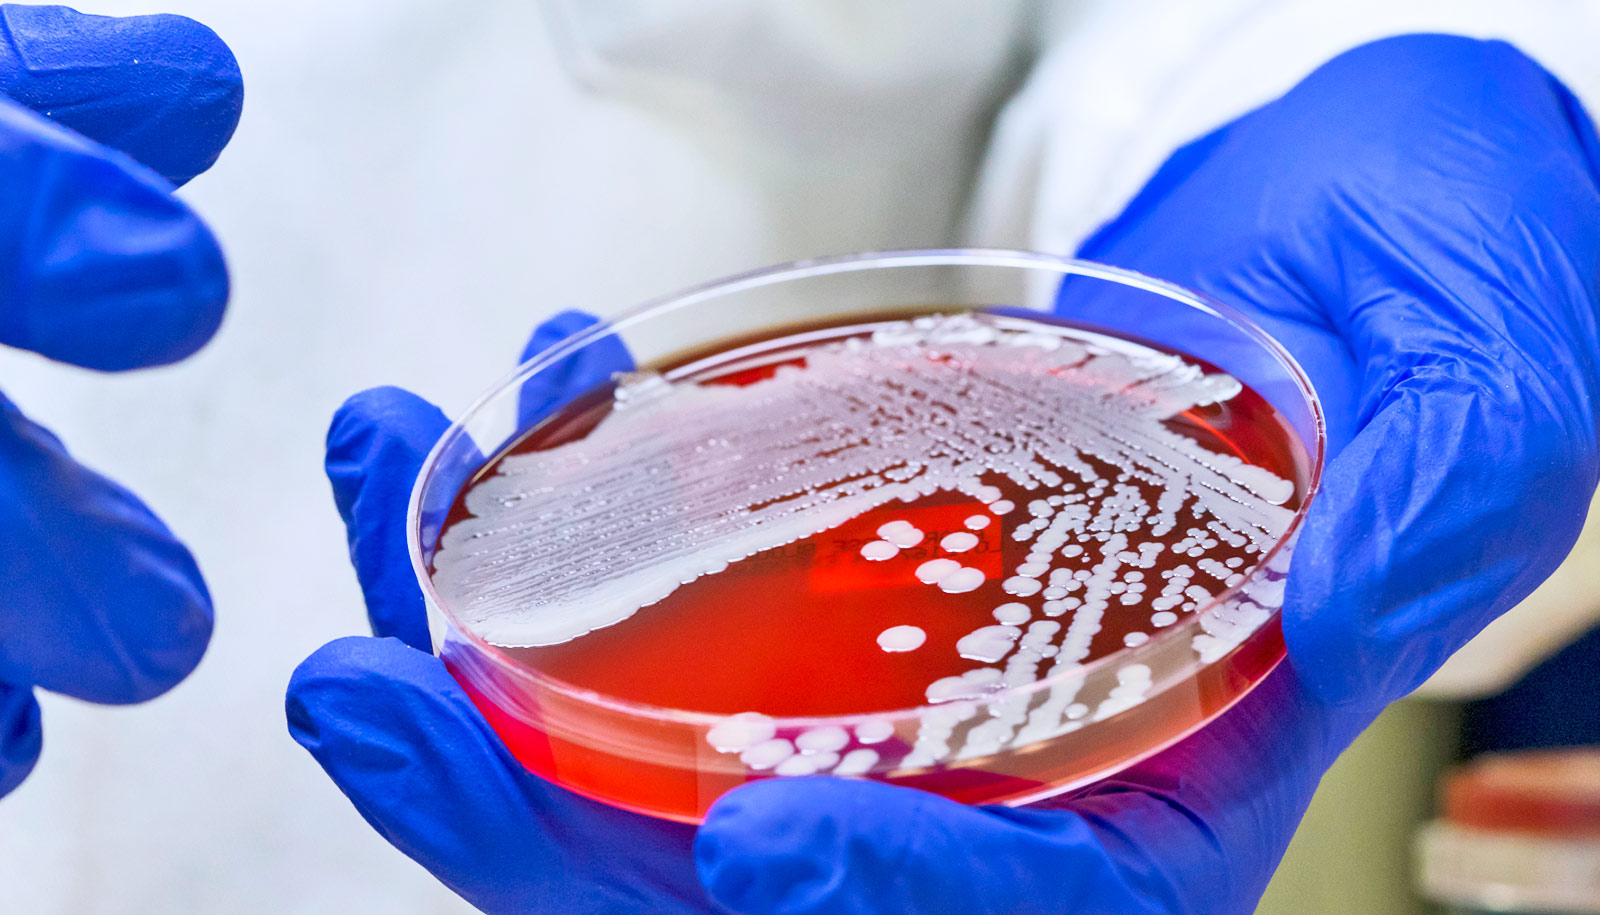 Polymer kills 99.9% of MRSA in just 5 minutes